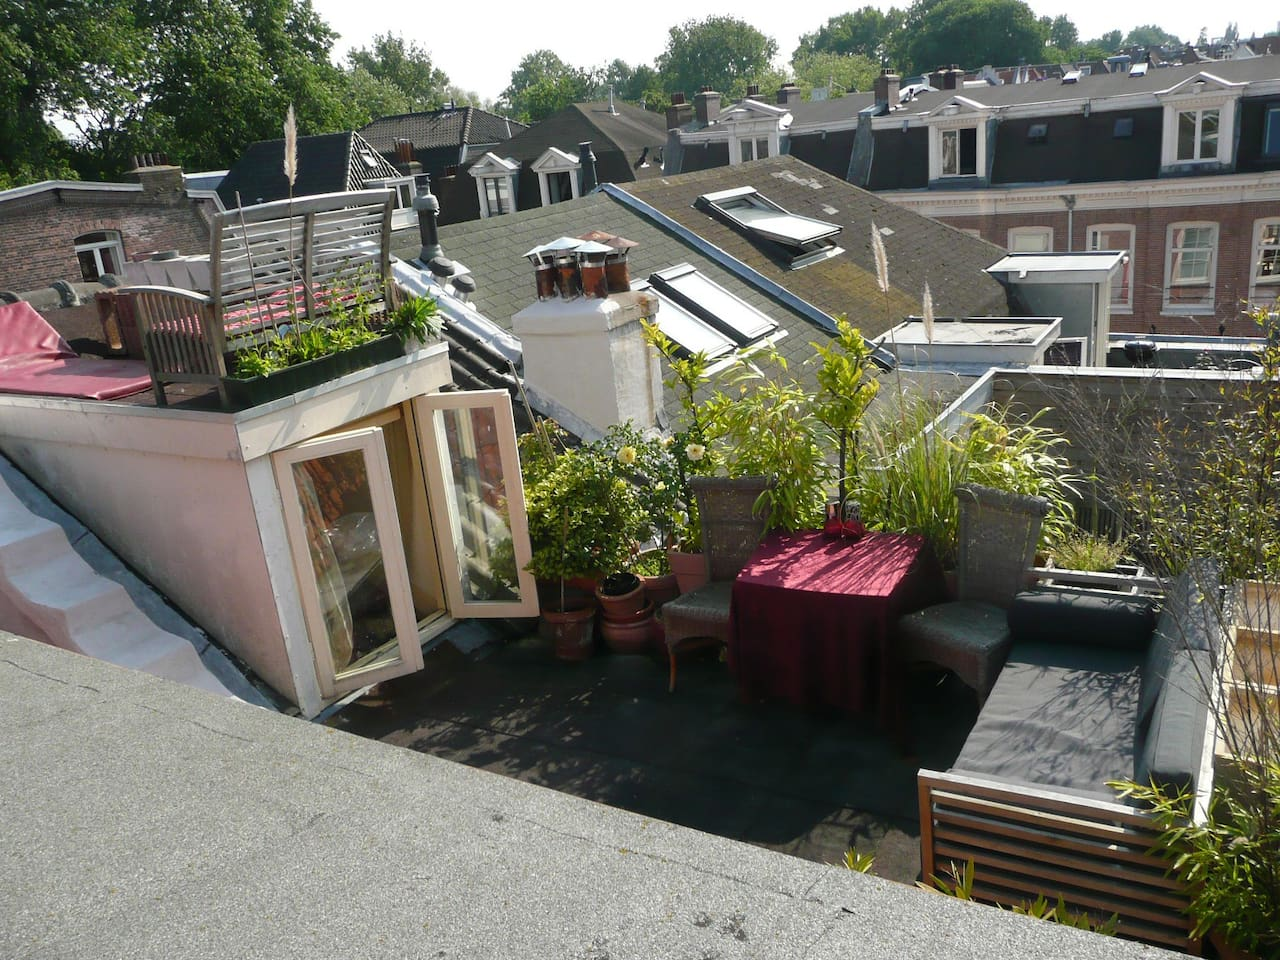 Amsterdam feel: 2 roof terraces, lounging, view park